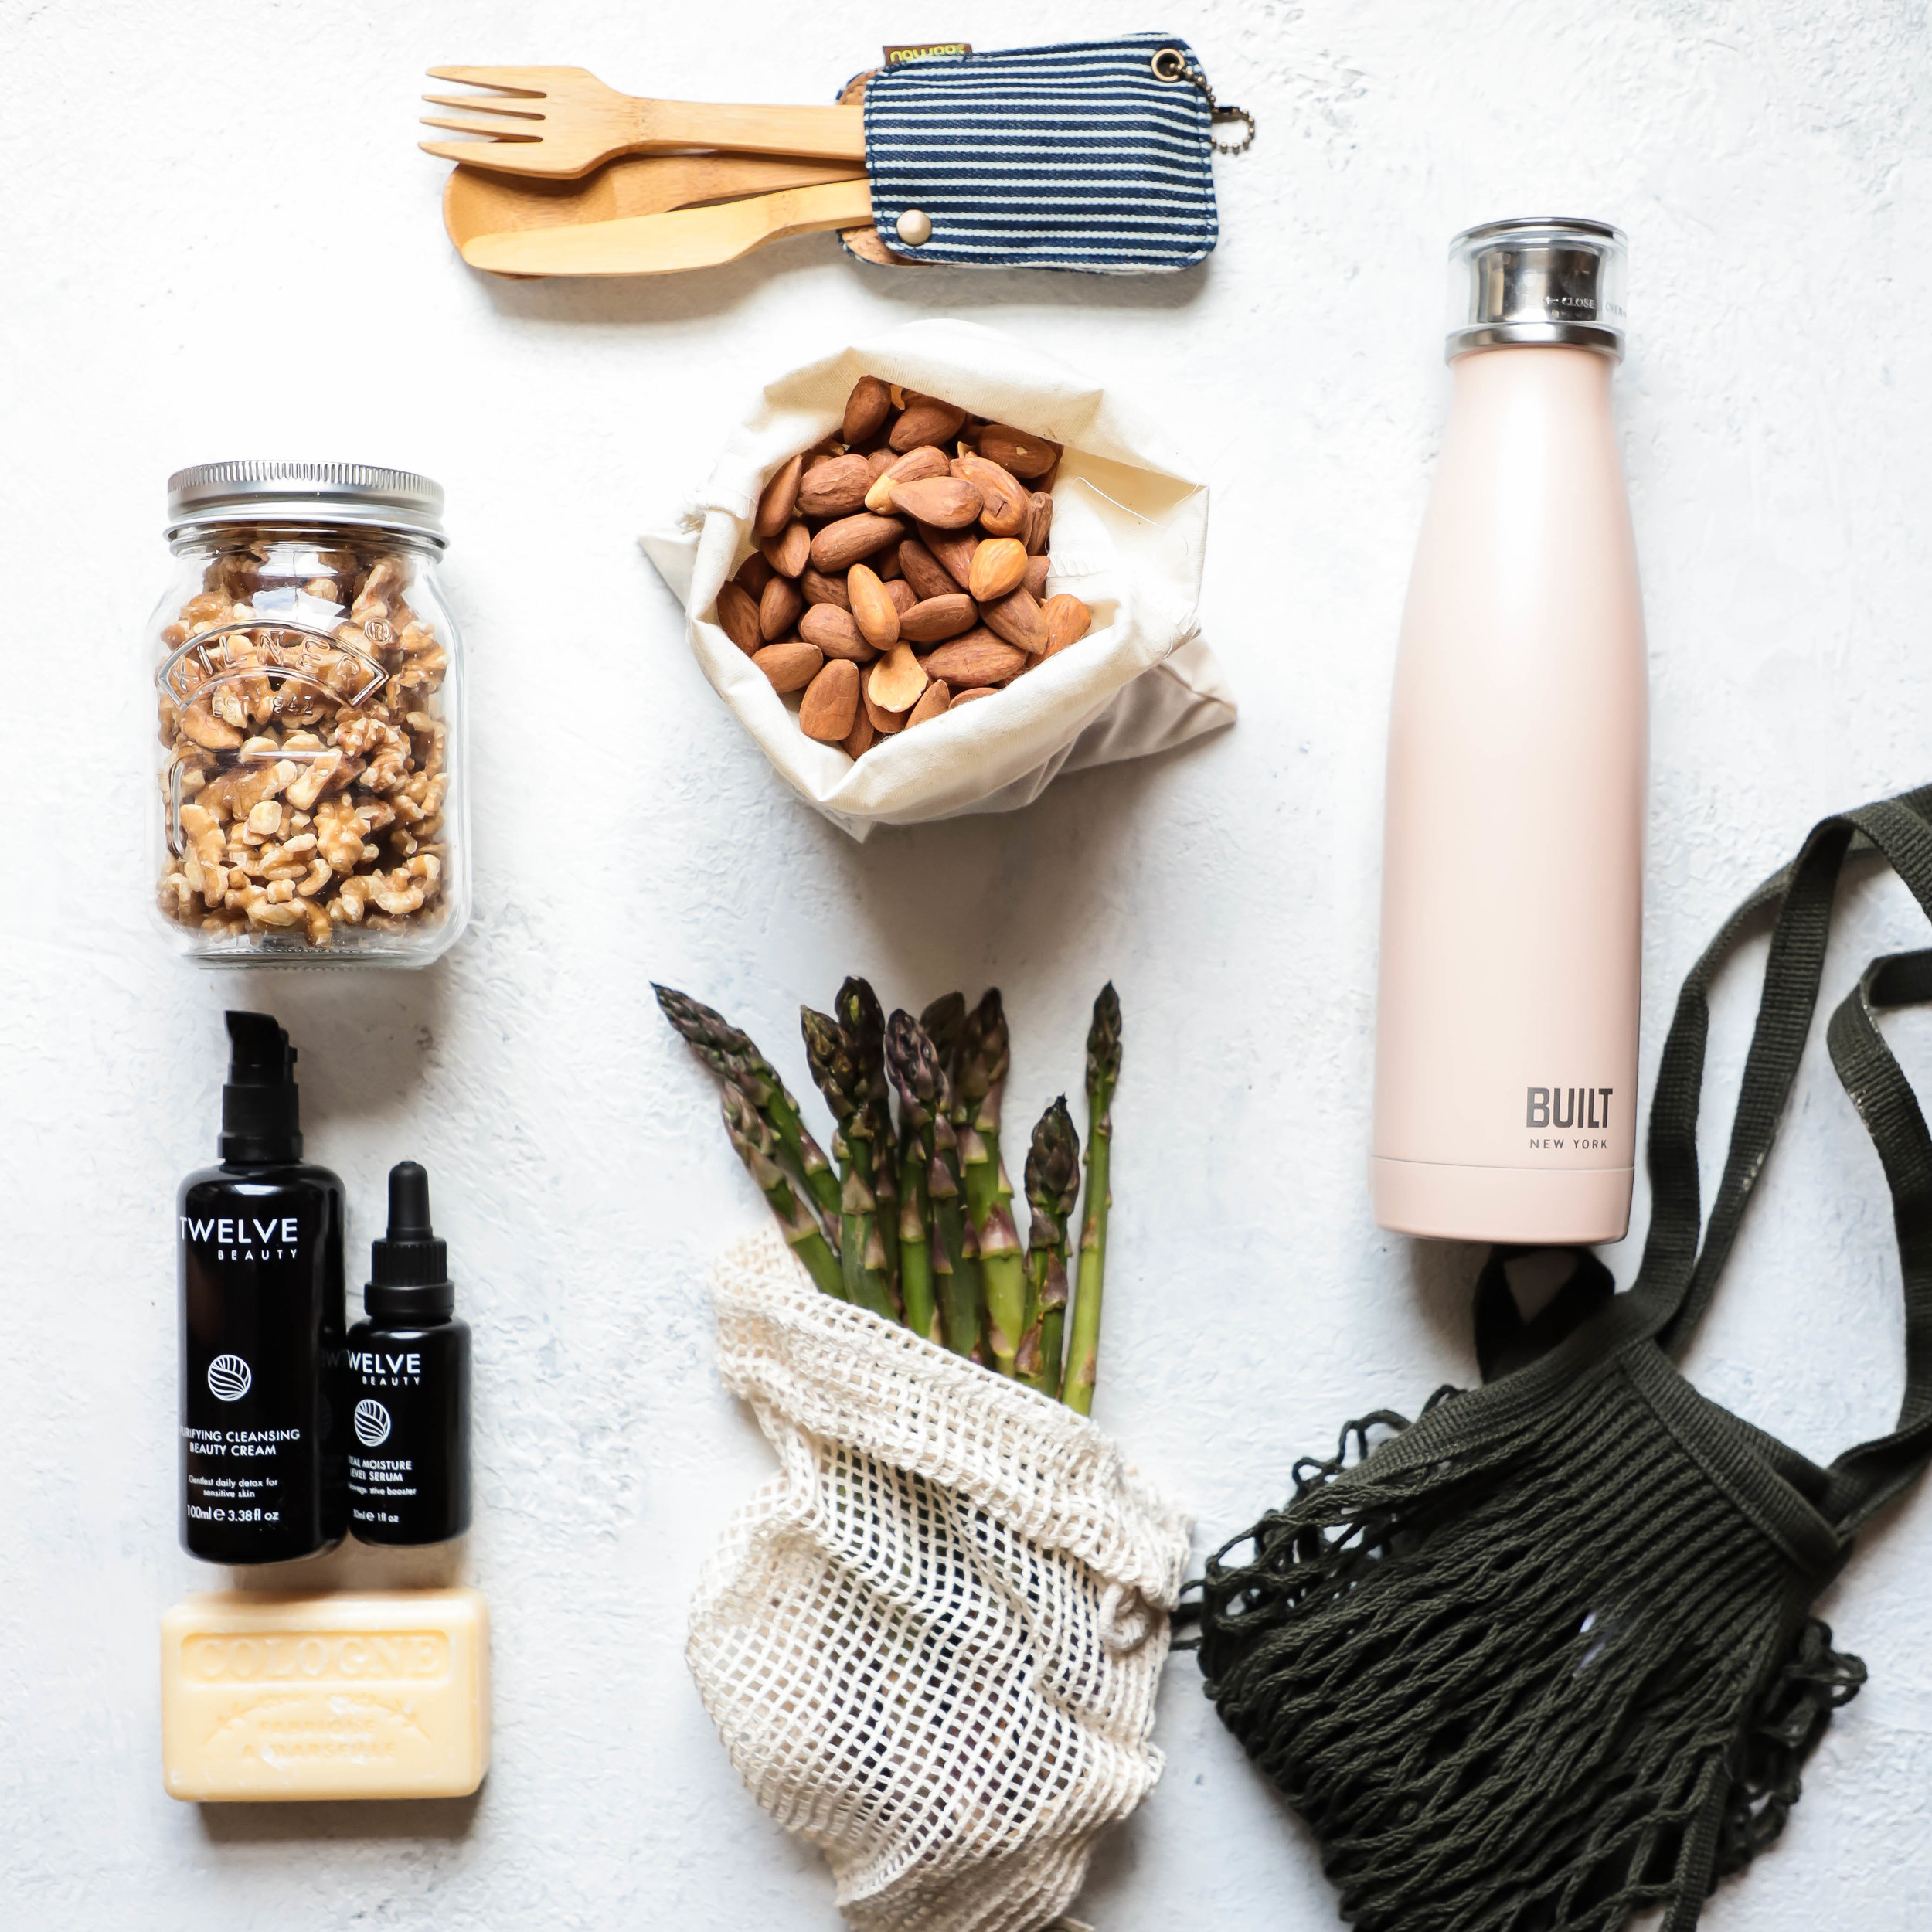 items and products to help reduce single-use plastic